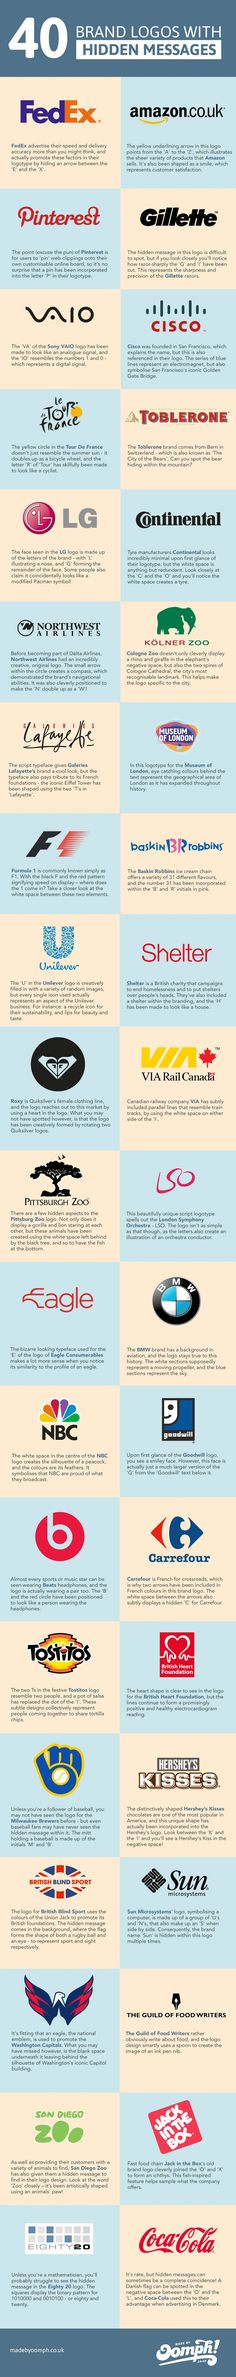 Infographic: 40 Famous Brand Logos With Hidden Messages